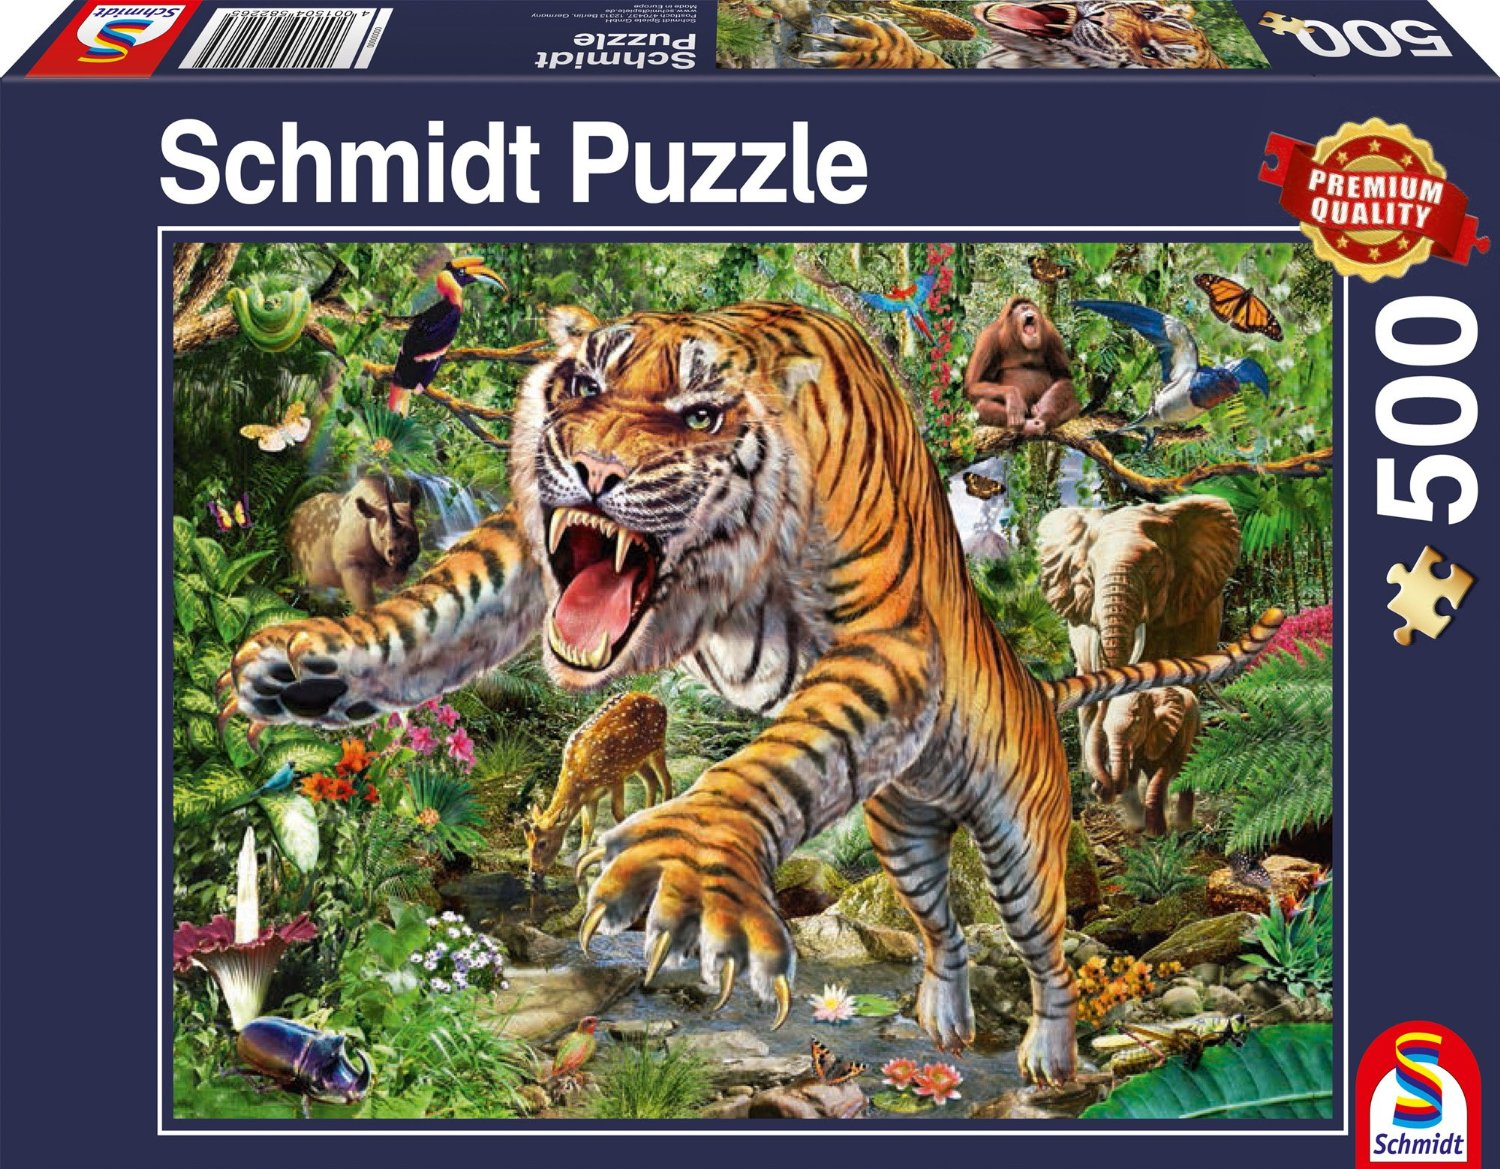 tiger angriff 500 teile schmidt spiele puzzle online kaufen. Black Bedroom Furniture Sets. Home Design Ideas